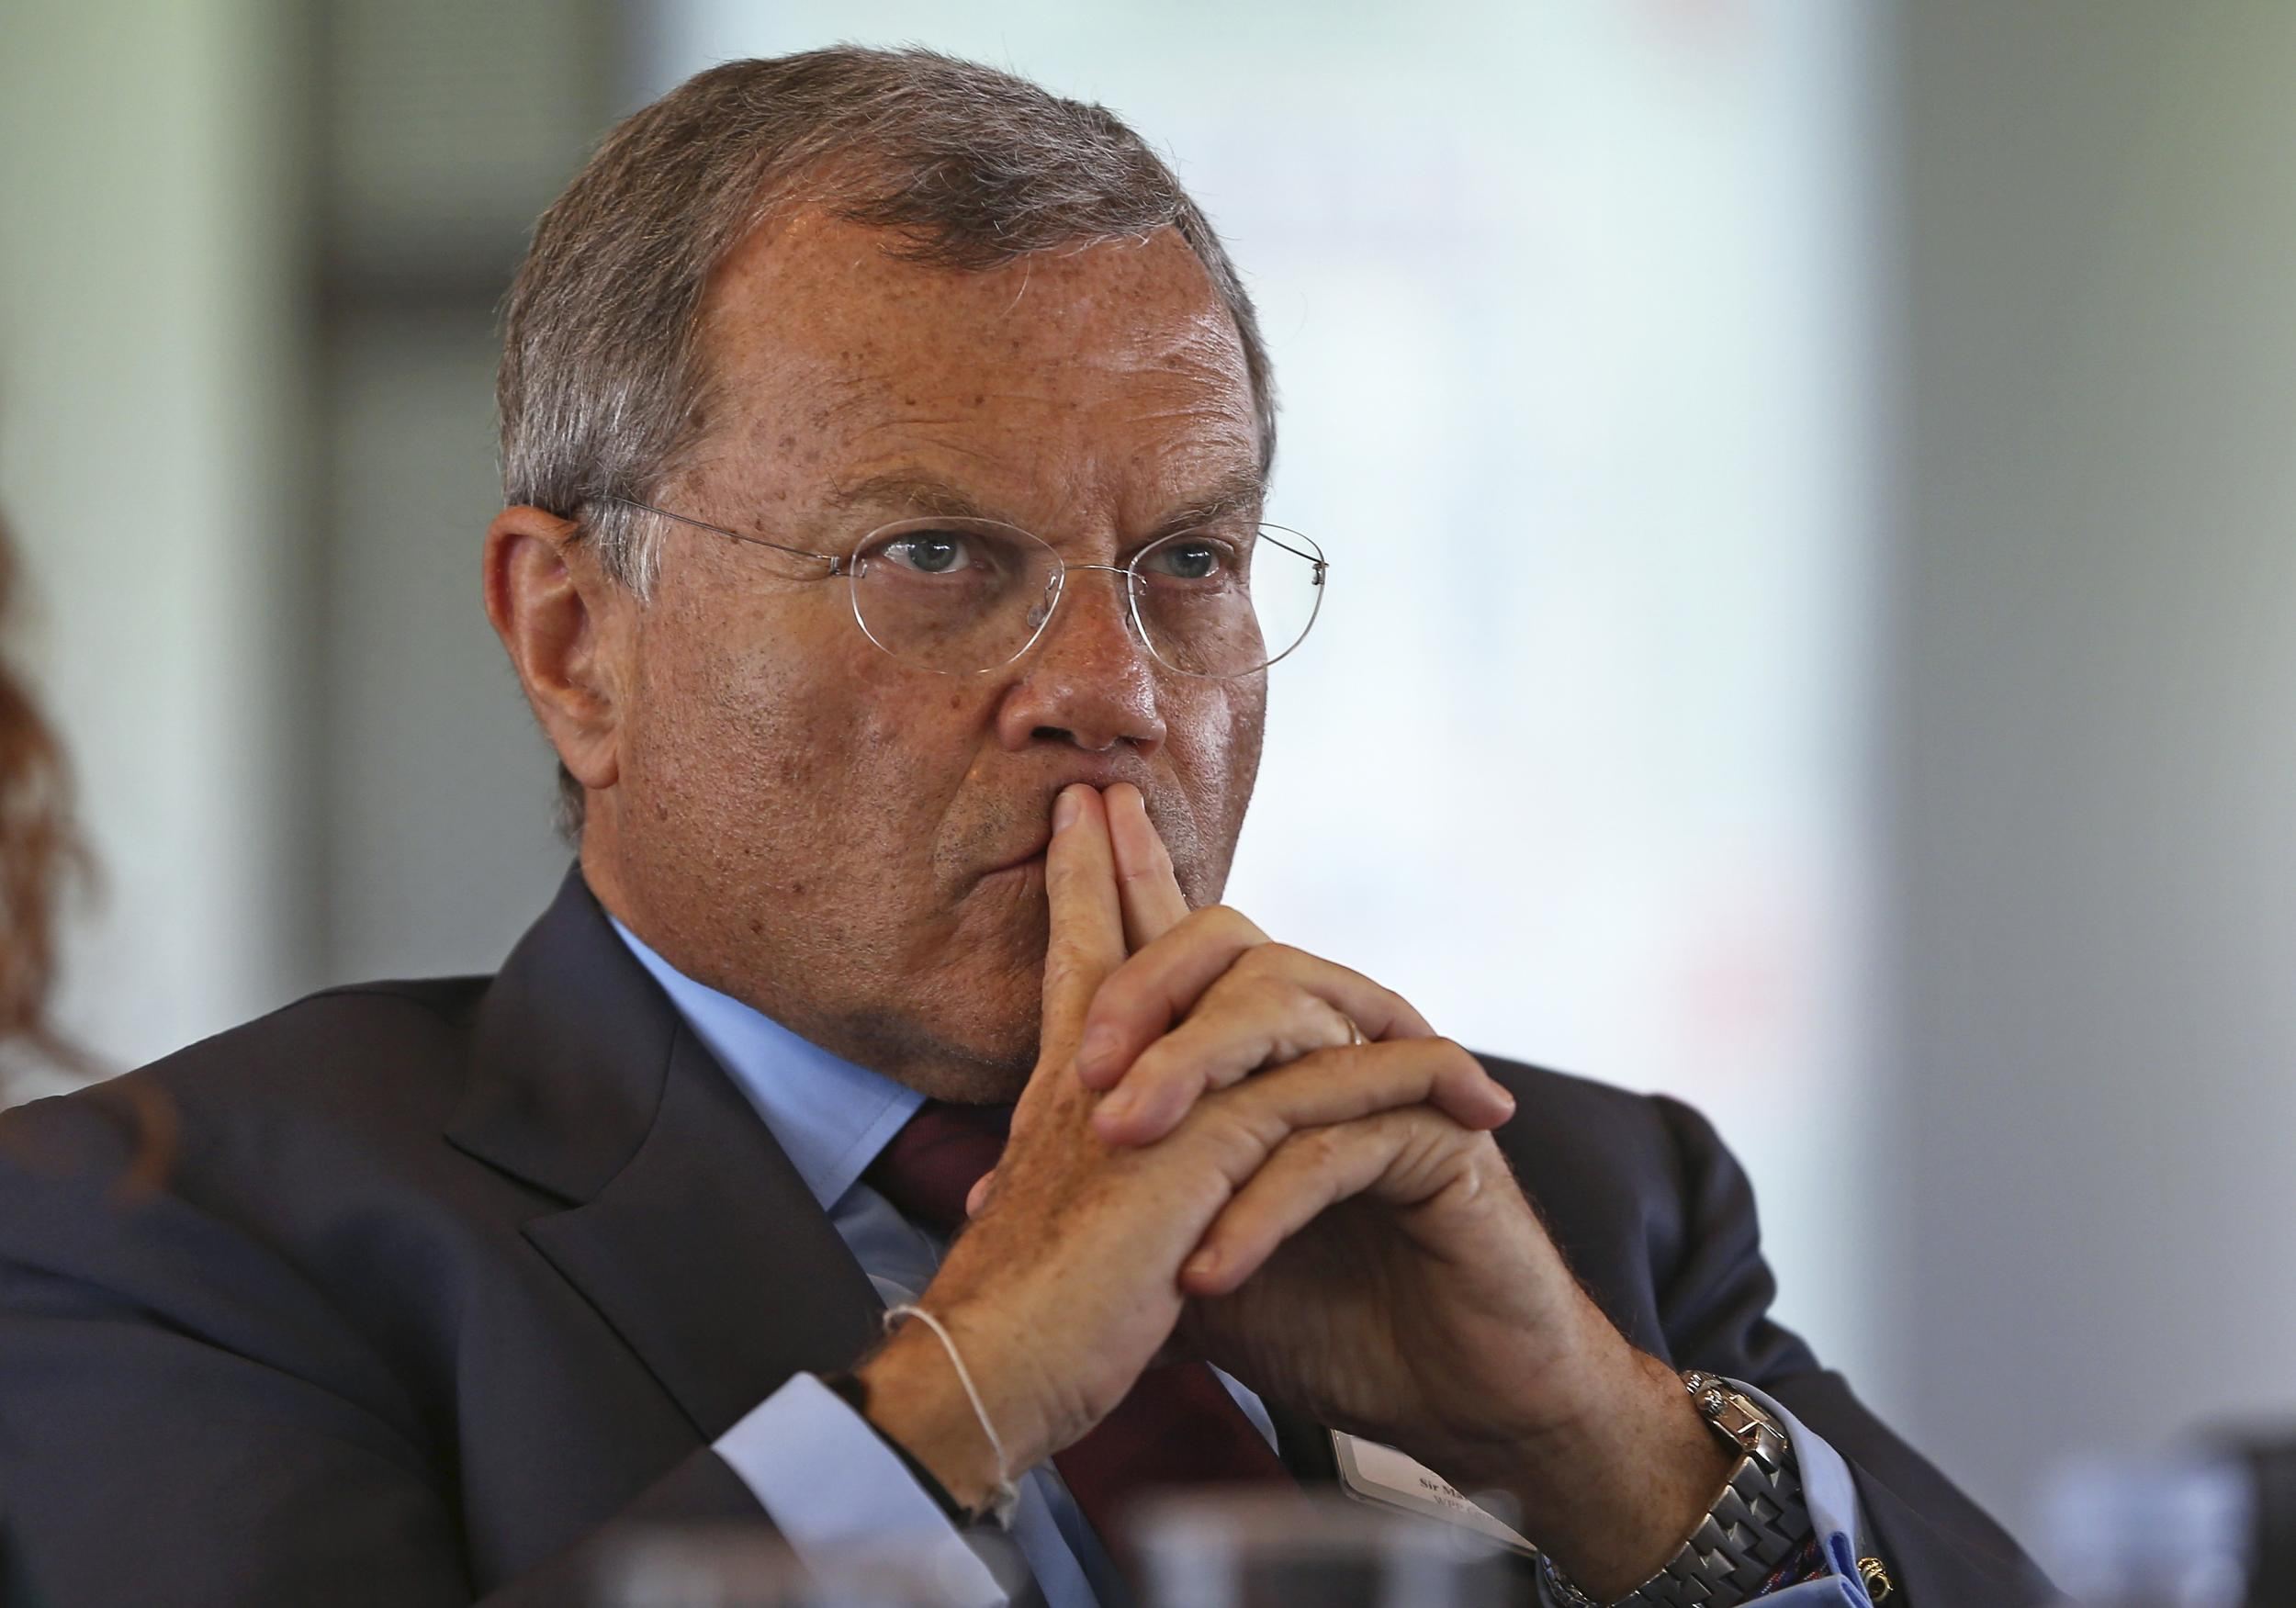 'Singapore on steroids': Sir Martin Sorrell lays out low-tax, low-regulation vision for Brexit Britain